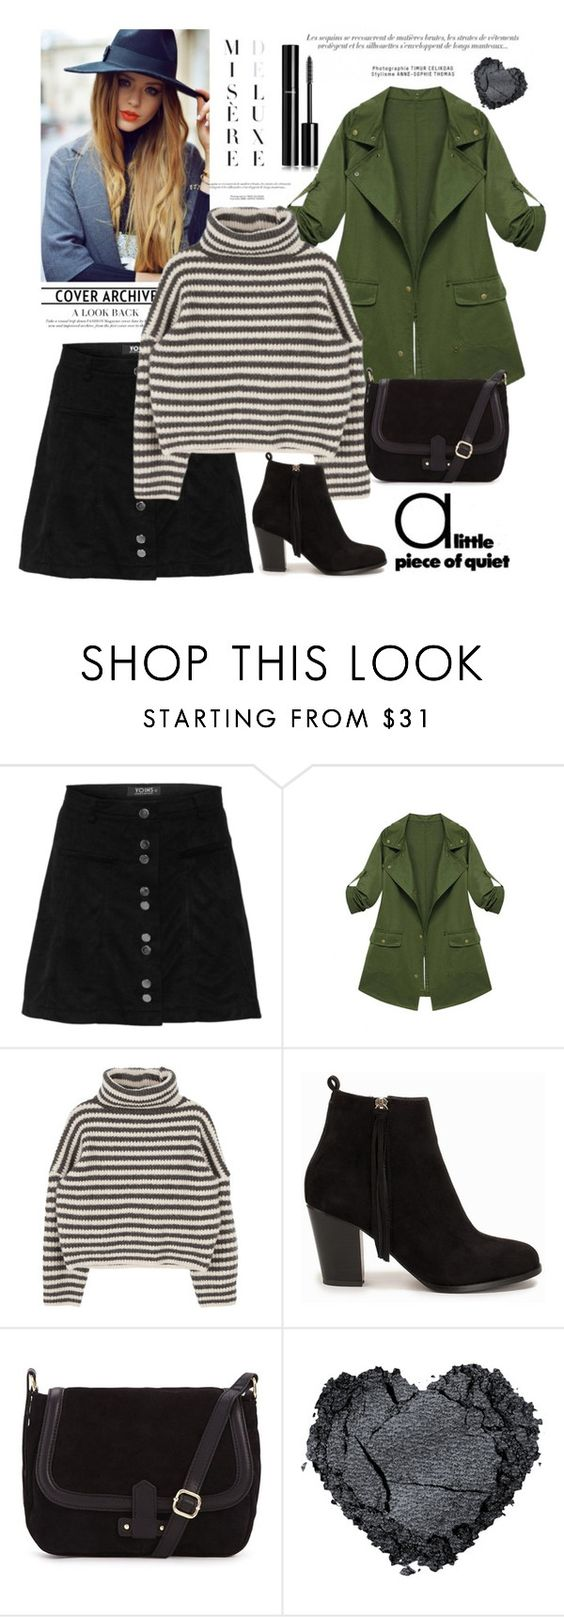 """Ootd"" by dianav8 ❤ liked on Polyvore featuring Nly Shoes, Chanel, women's clothing, women's fashion, women, female, woman, misses and juniors"